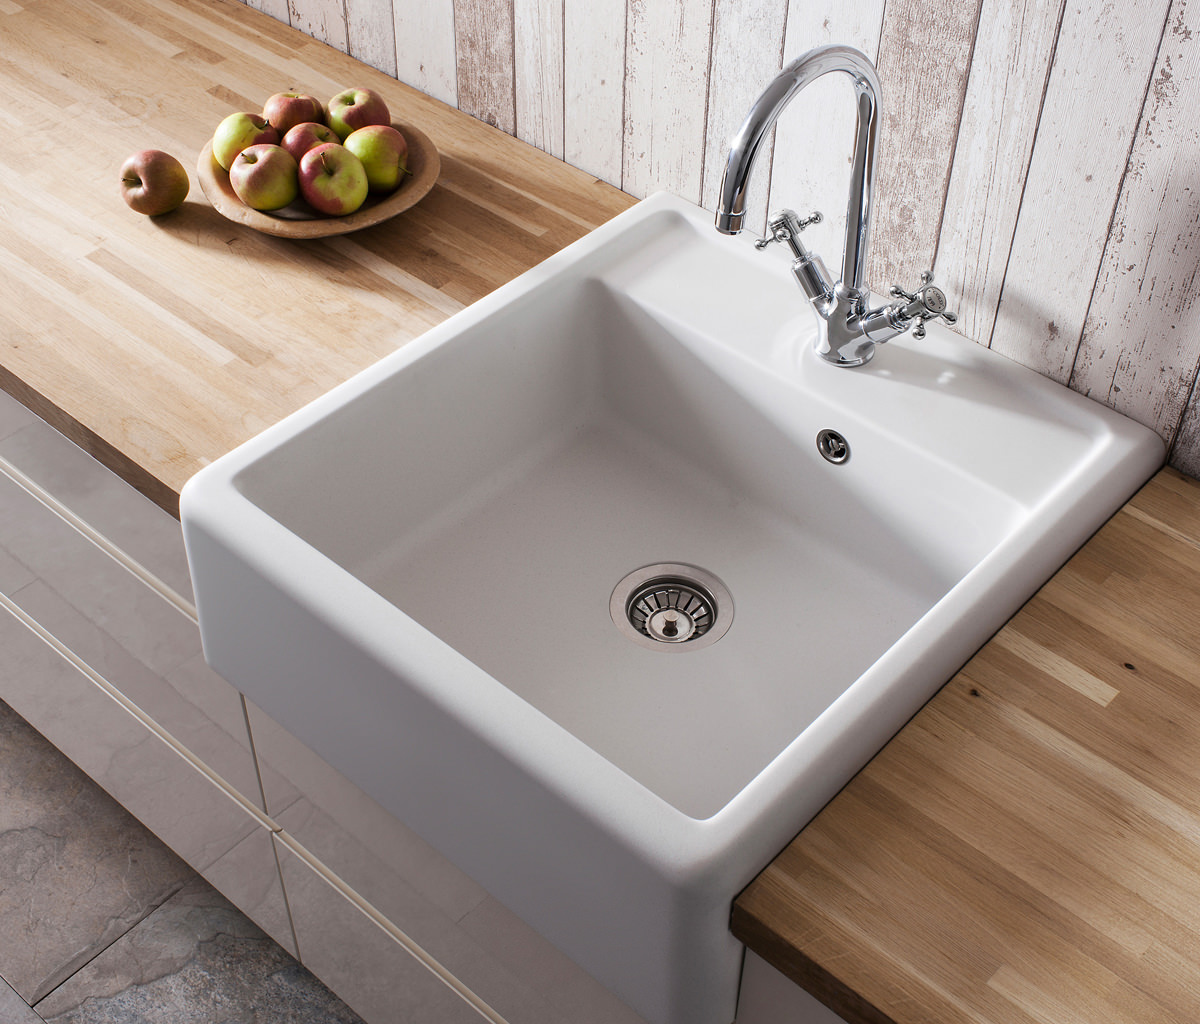 Designer Kitchen Sinks South Africa